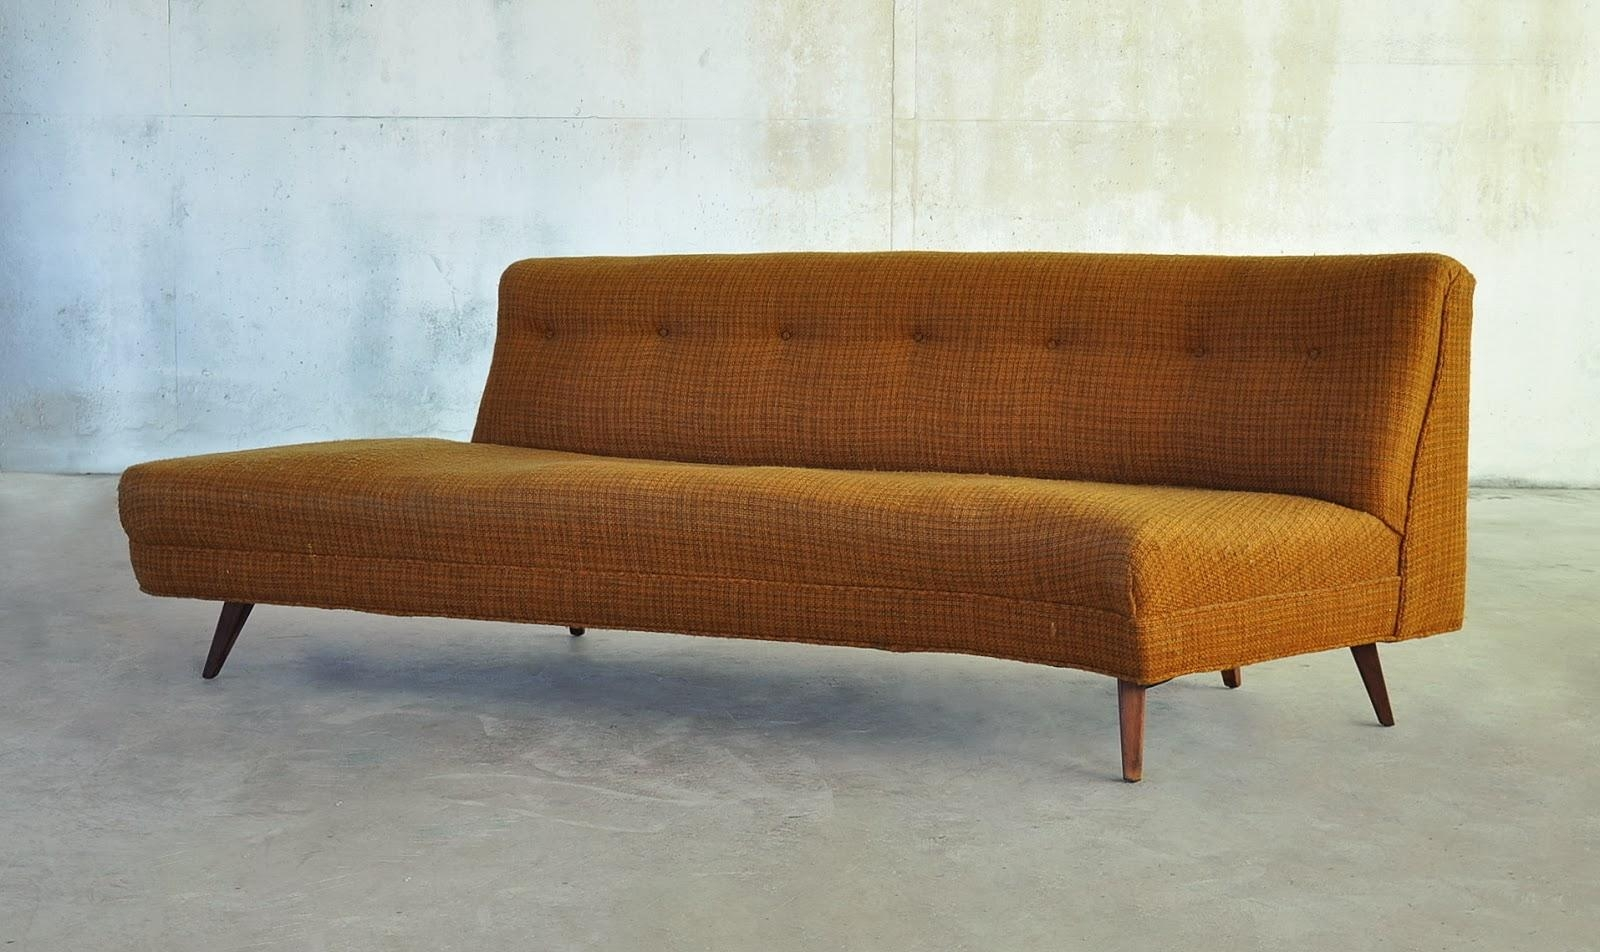 Select Modern: Mid Century Modern Sectional Sofa Regarding Mid Century Modern Sectional (Image 14 of 20)